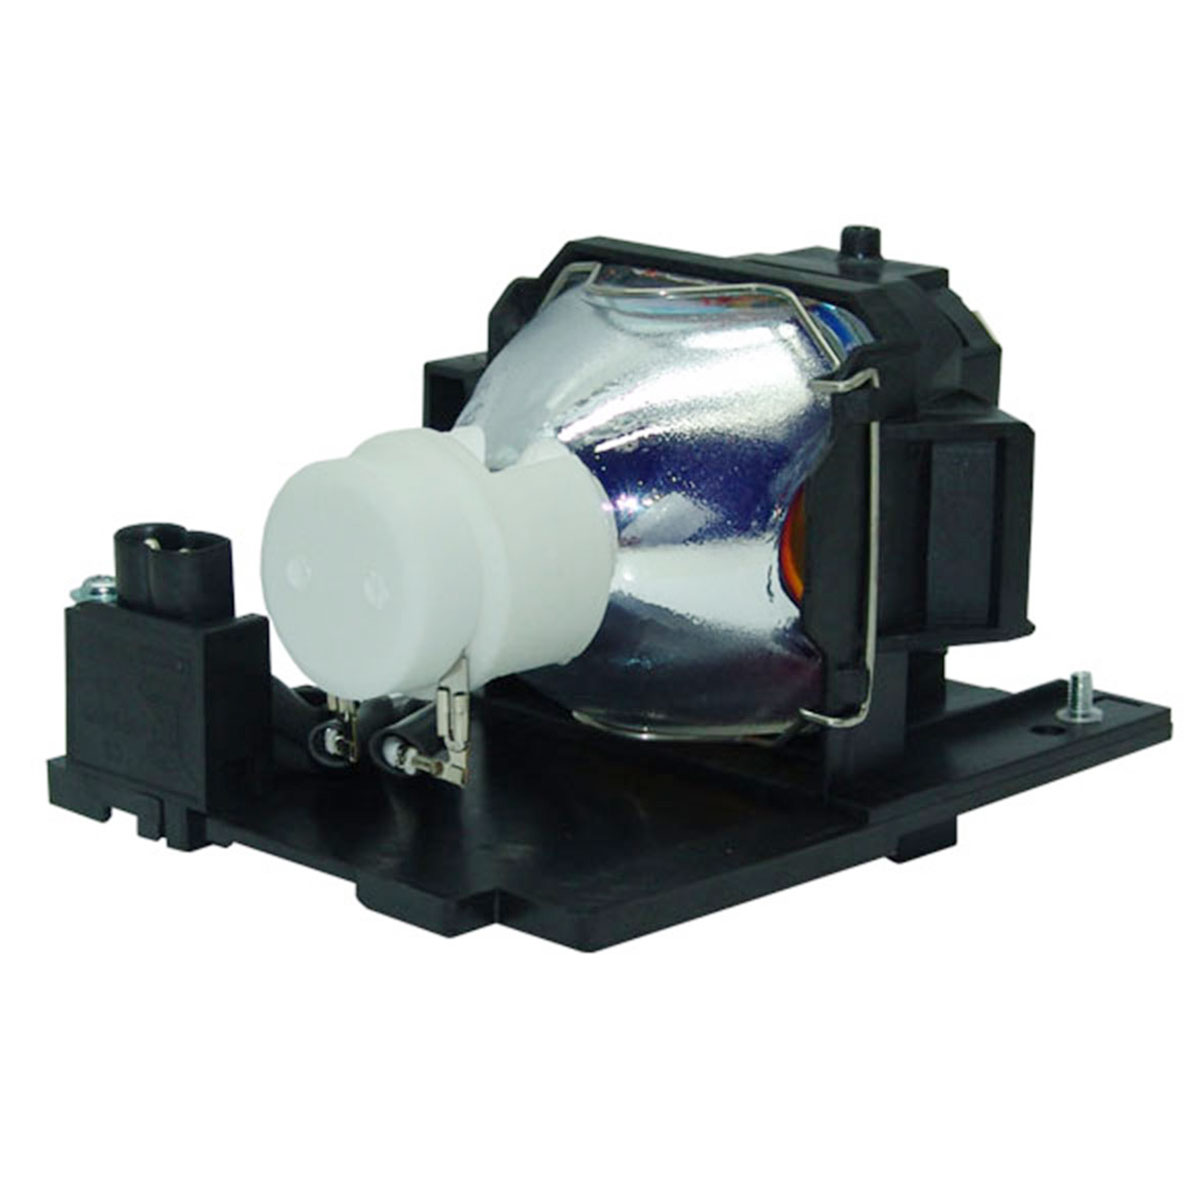 Lutema Economy for Dukane ImagePro 8922H Projector Lamp (Bulb Only) - image 4 de 5